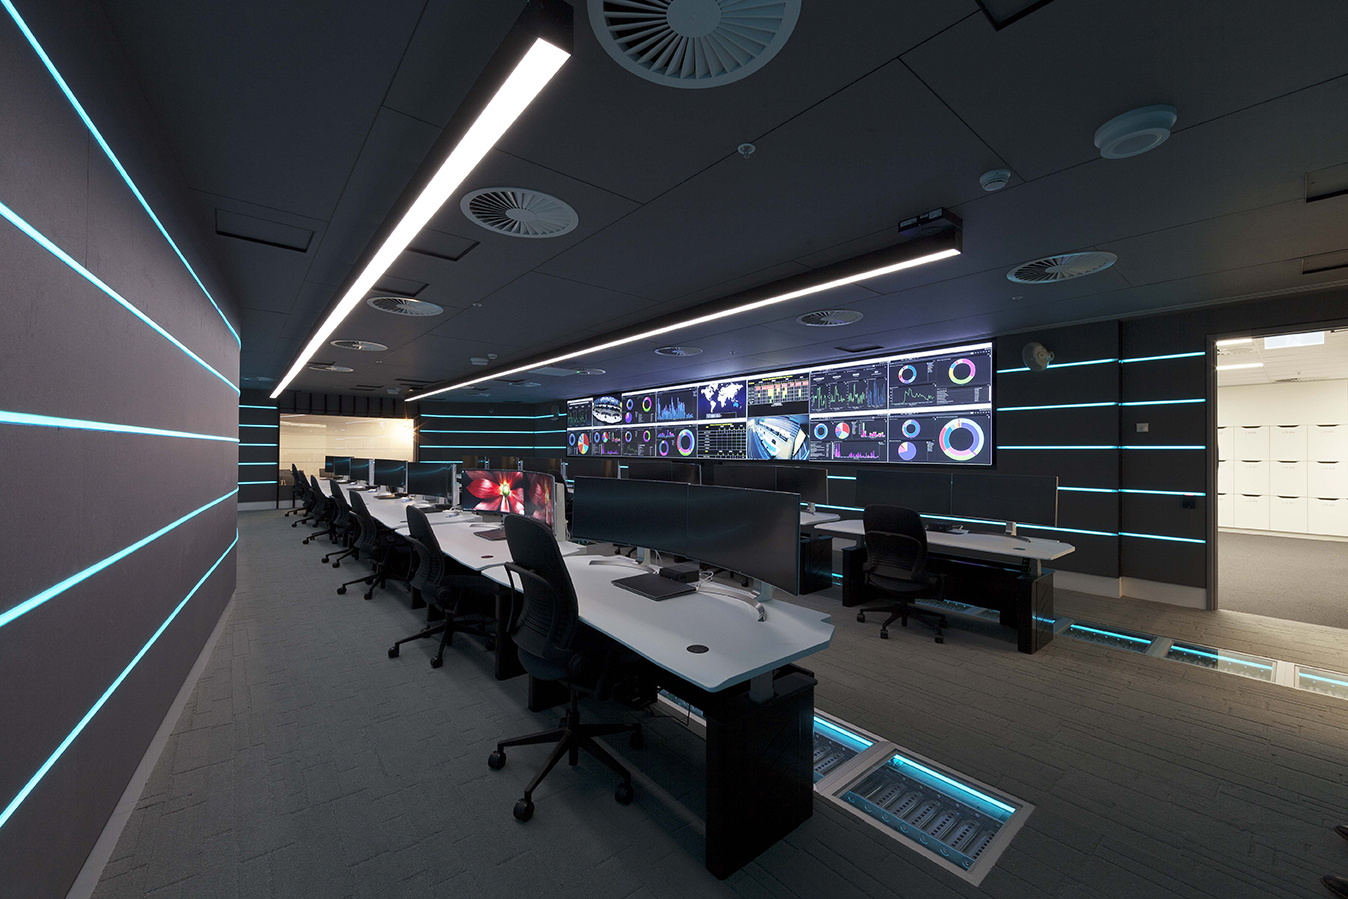 All AV equipment (Computers, Monitors, Screens) and materials used had to comply with strict ASIO Guidelines. Tall Architects are one of the few architectual firms in Australia with demonstratble experience working to defence standards.